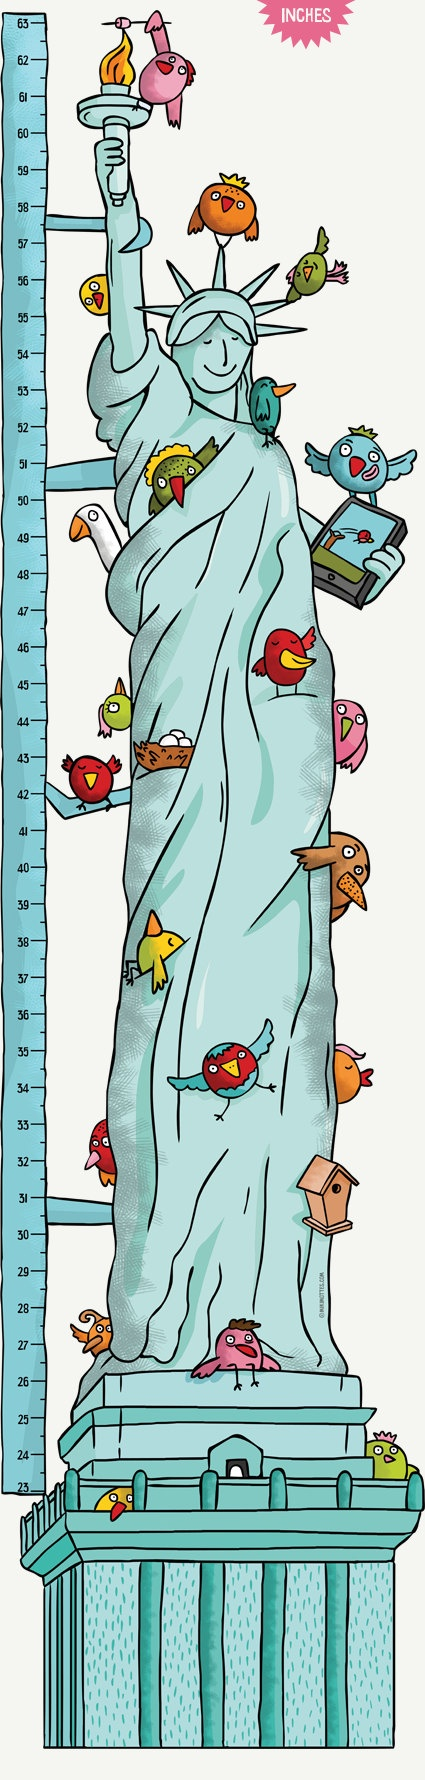 Best Growth Charts  Kids Height Charts By Miki Mottes On Etsy